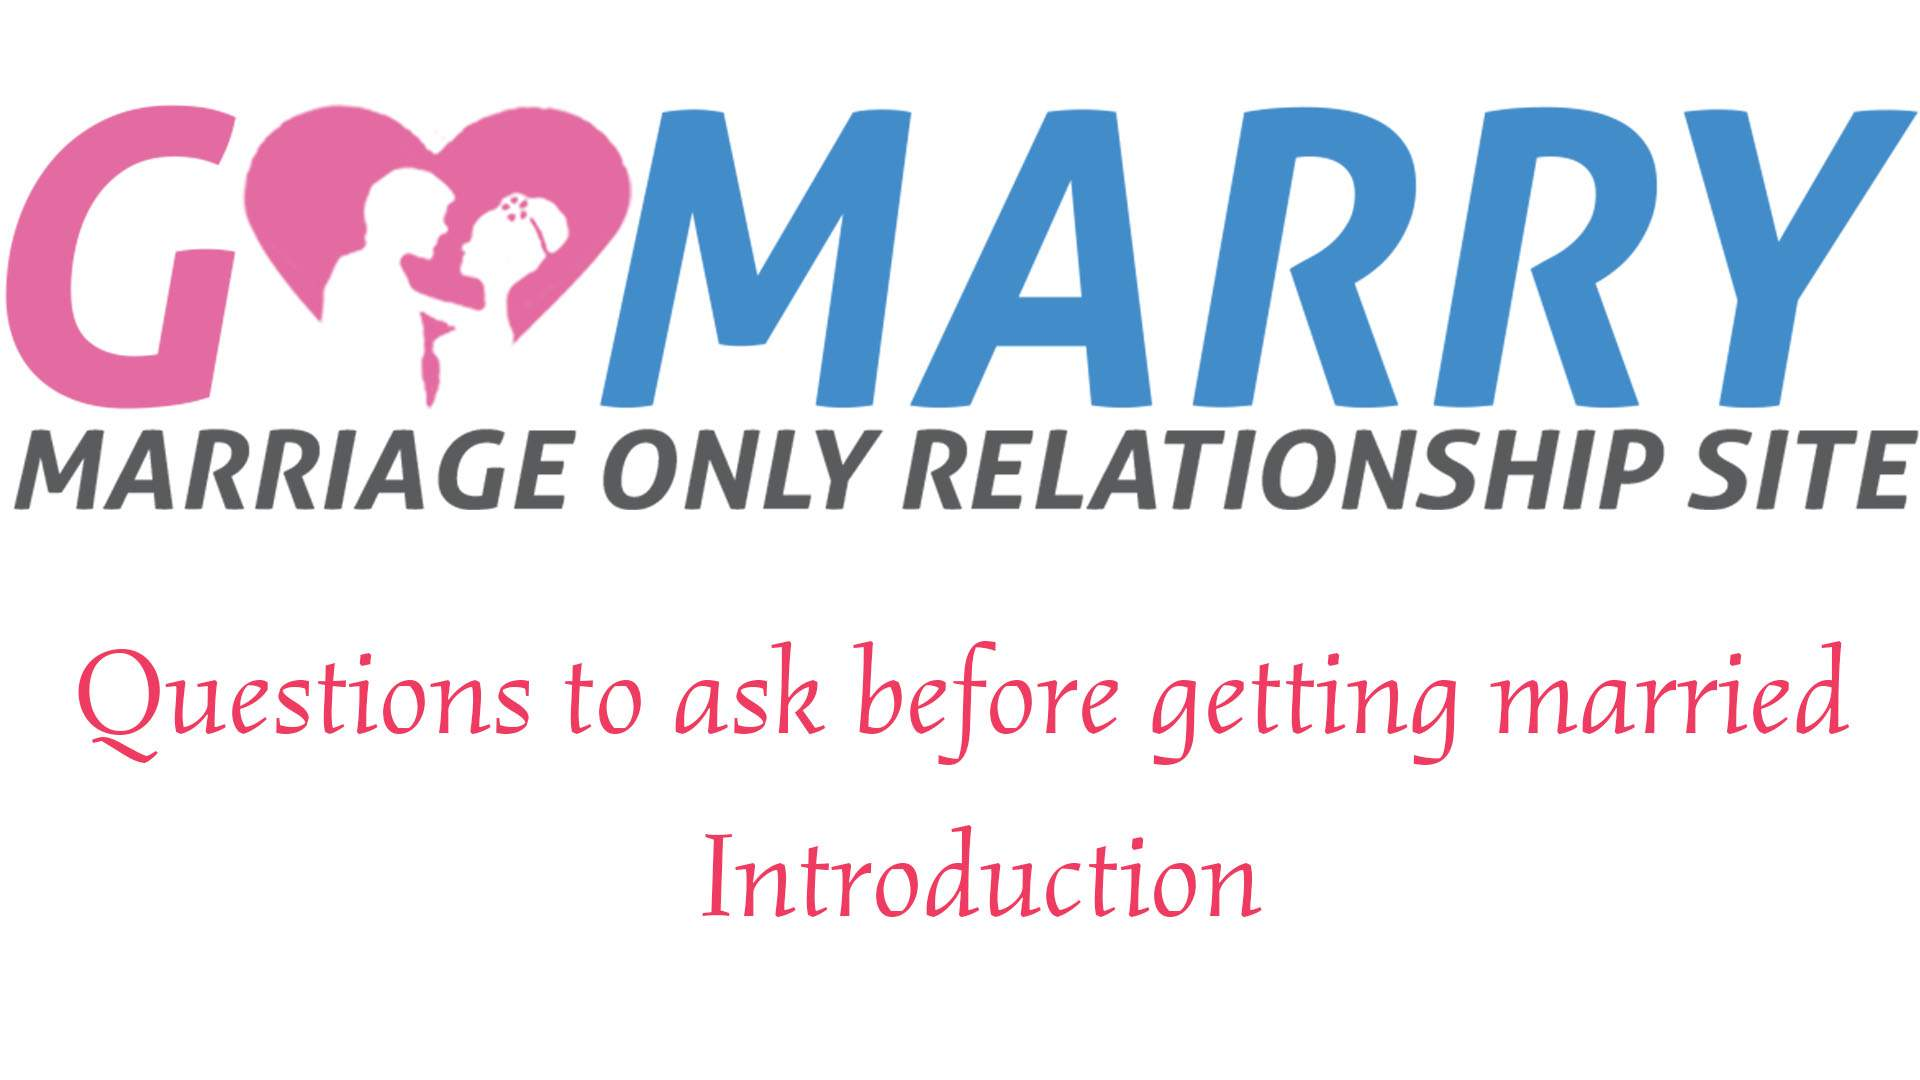 Questions to ask before getting married: Introduction